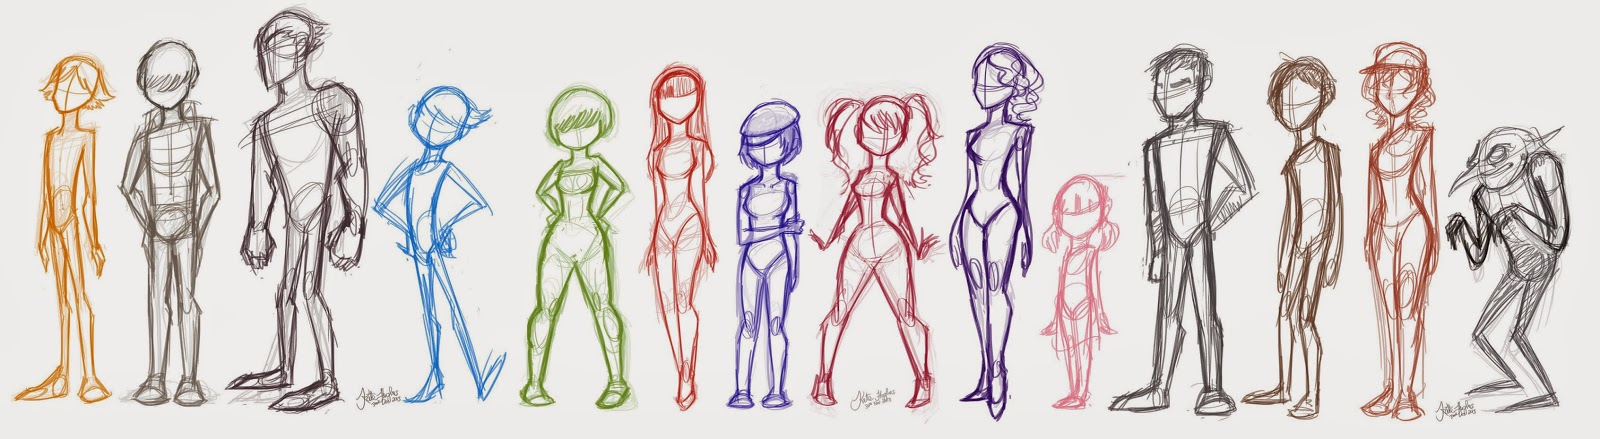 Kate S Arts Bodytype Chart Sketches